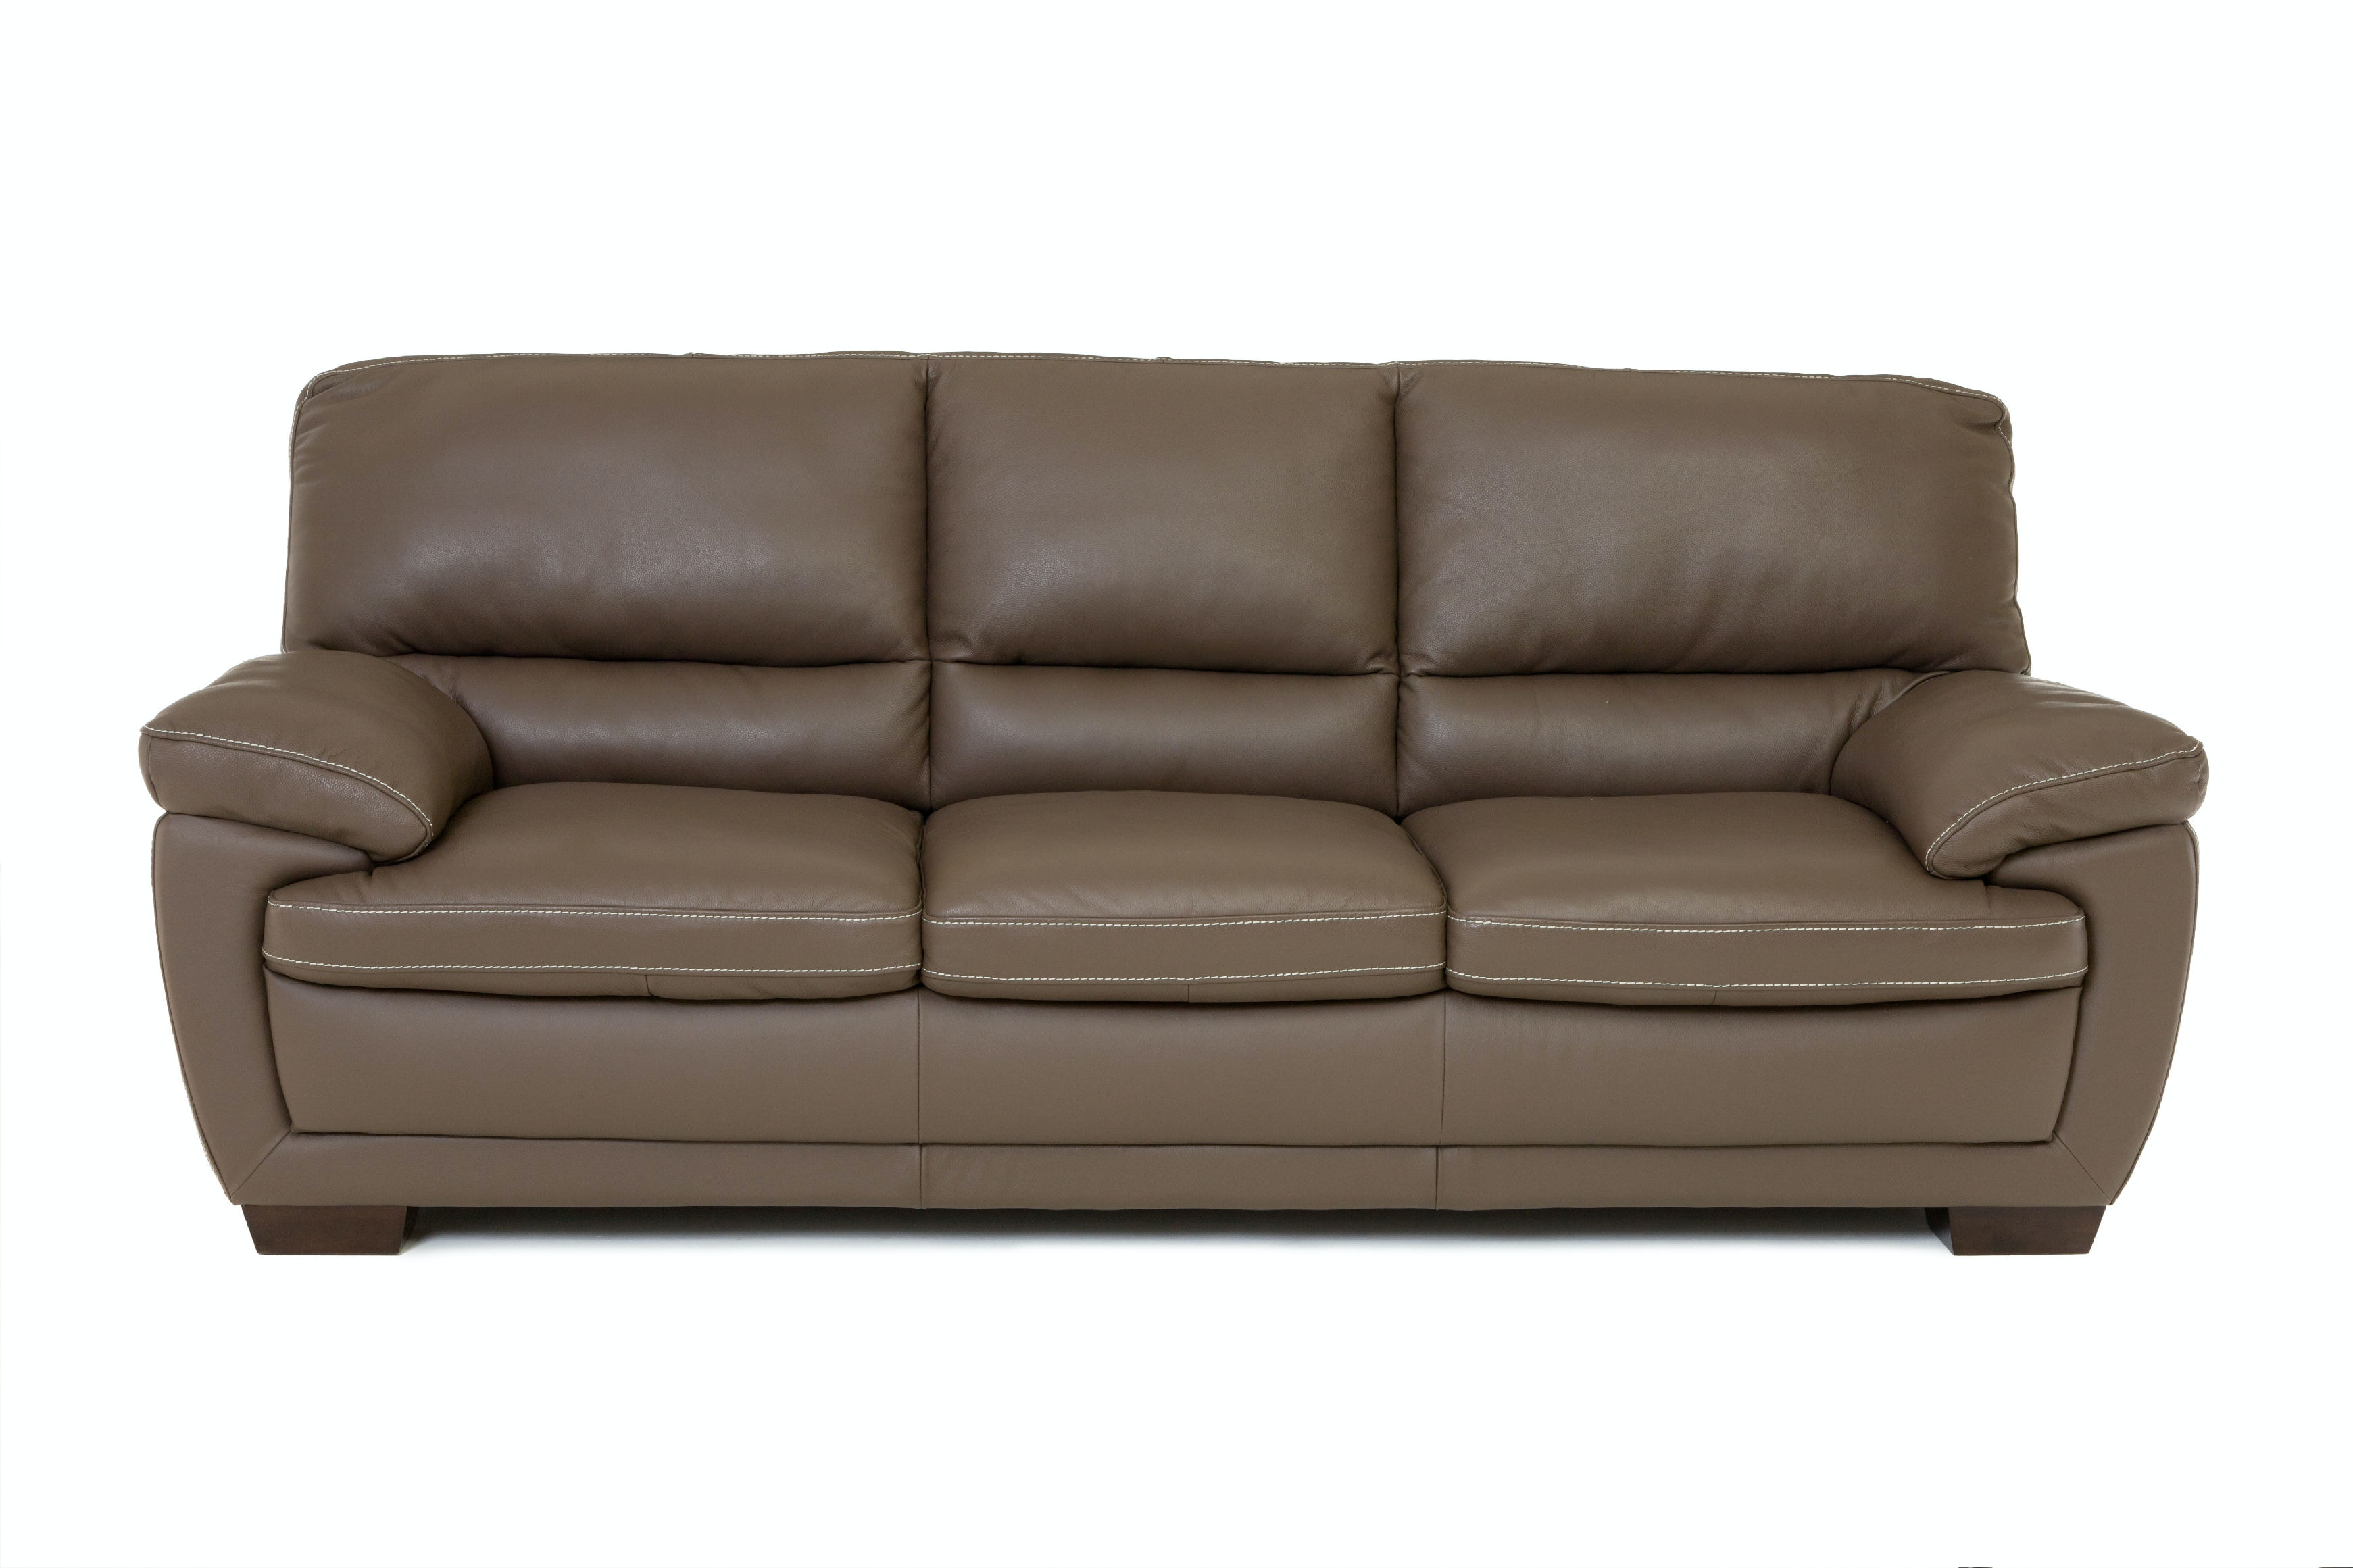 Wonderful Denver Leather Sofa   DARK TAUPE